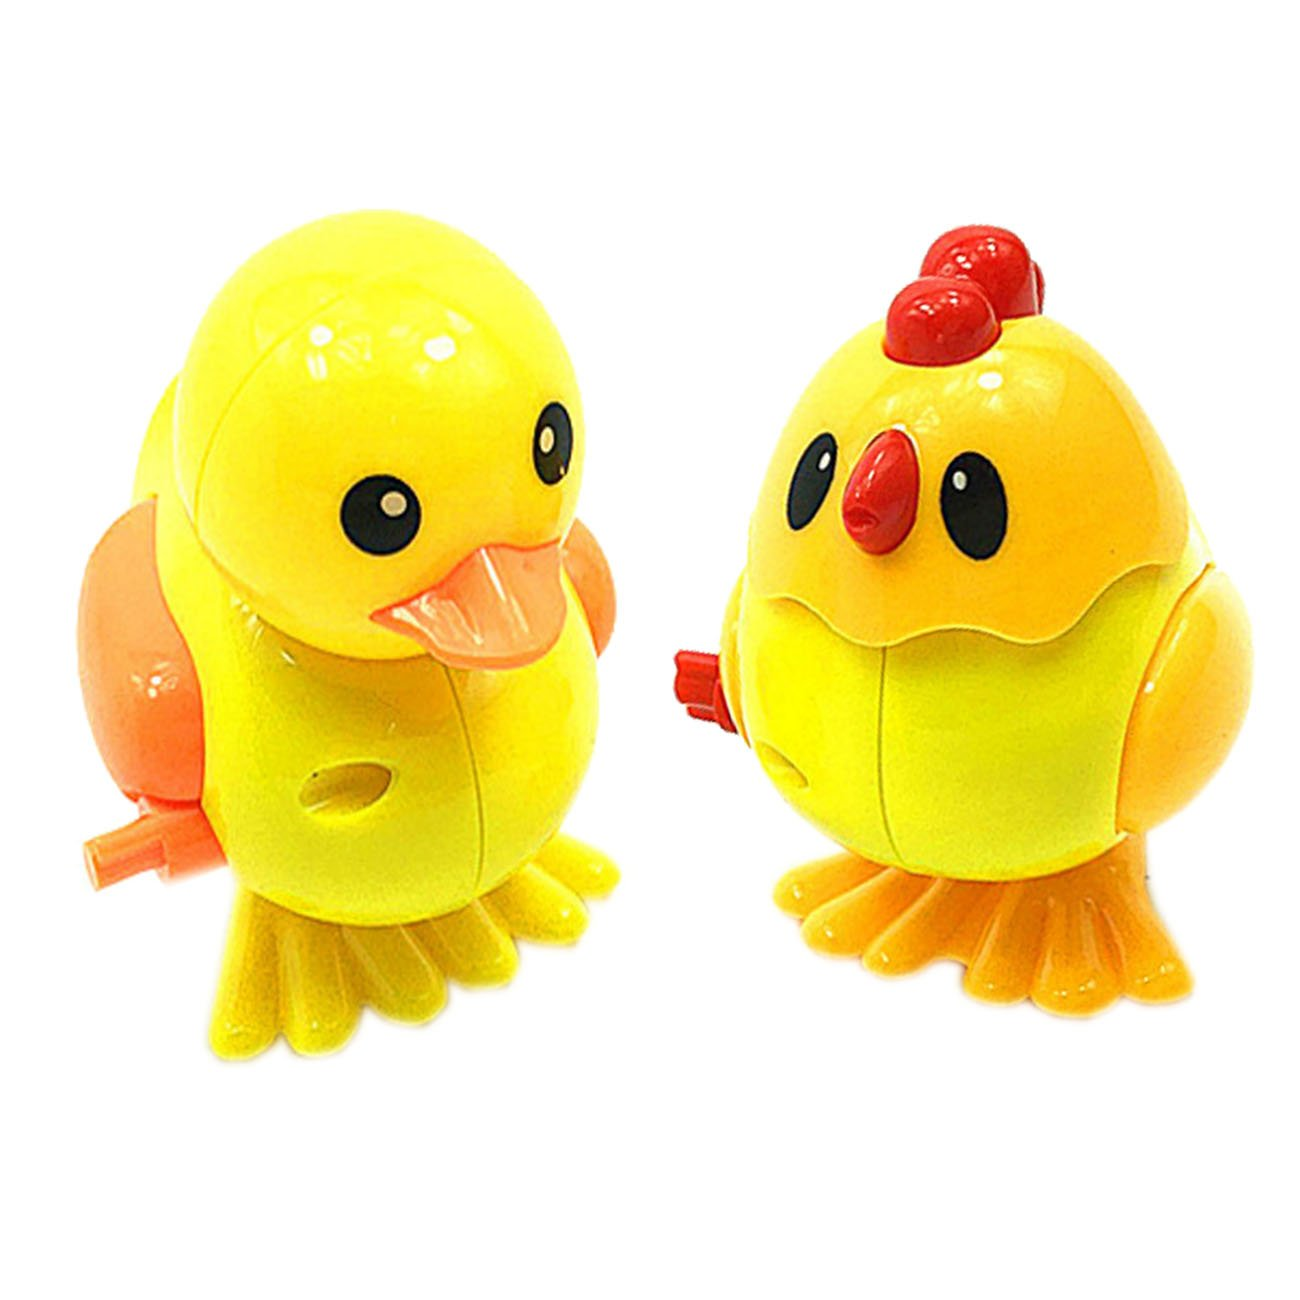 Wind-up Jumping Chicken +Duck Assortment Jumping Animals Chain Toy for Infant,Clockwork Toys, Children's Puzzle Toys, Emotional Interactive Toys,Strong Activity, the Best Gift for the Child.